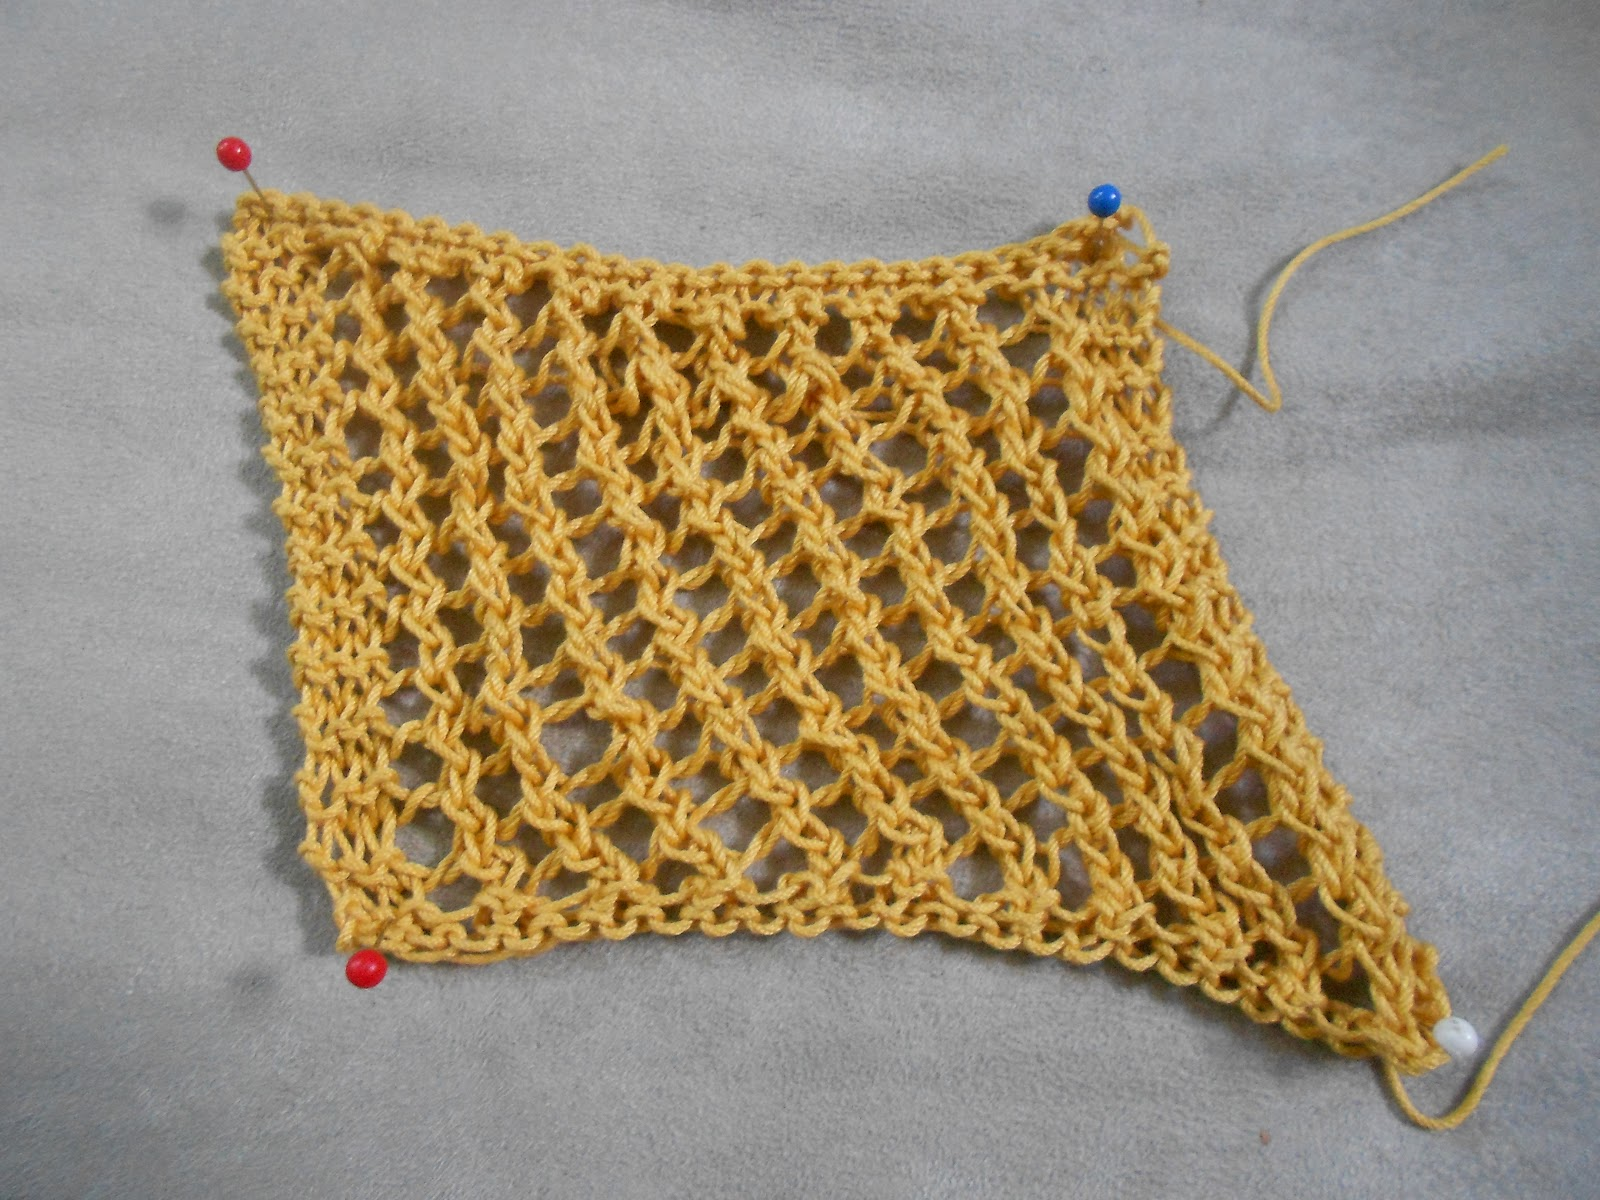 Knit Mesh Stitch In The Round : Blue Betty: Stitch Guide: Left Leaning Mesh